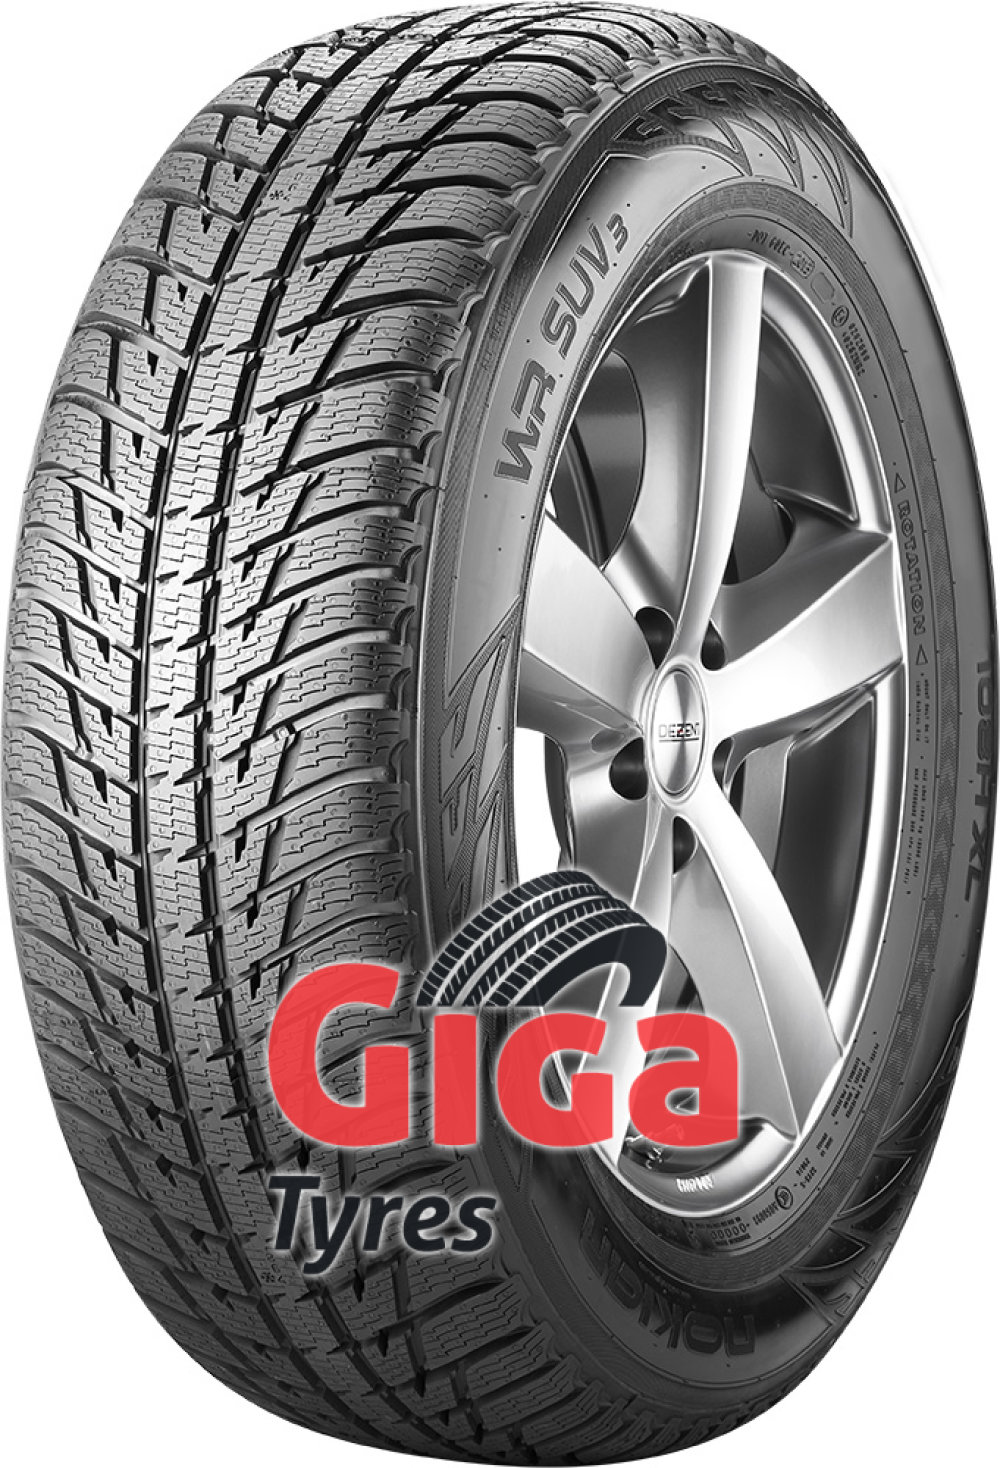 Nokian WR SUV 3 ( 255/45 R20 105V XL , with rim protection (MFS) )